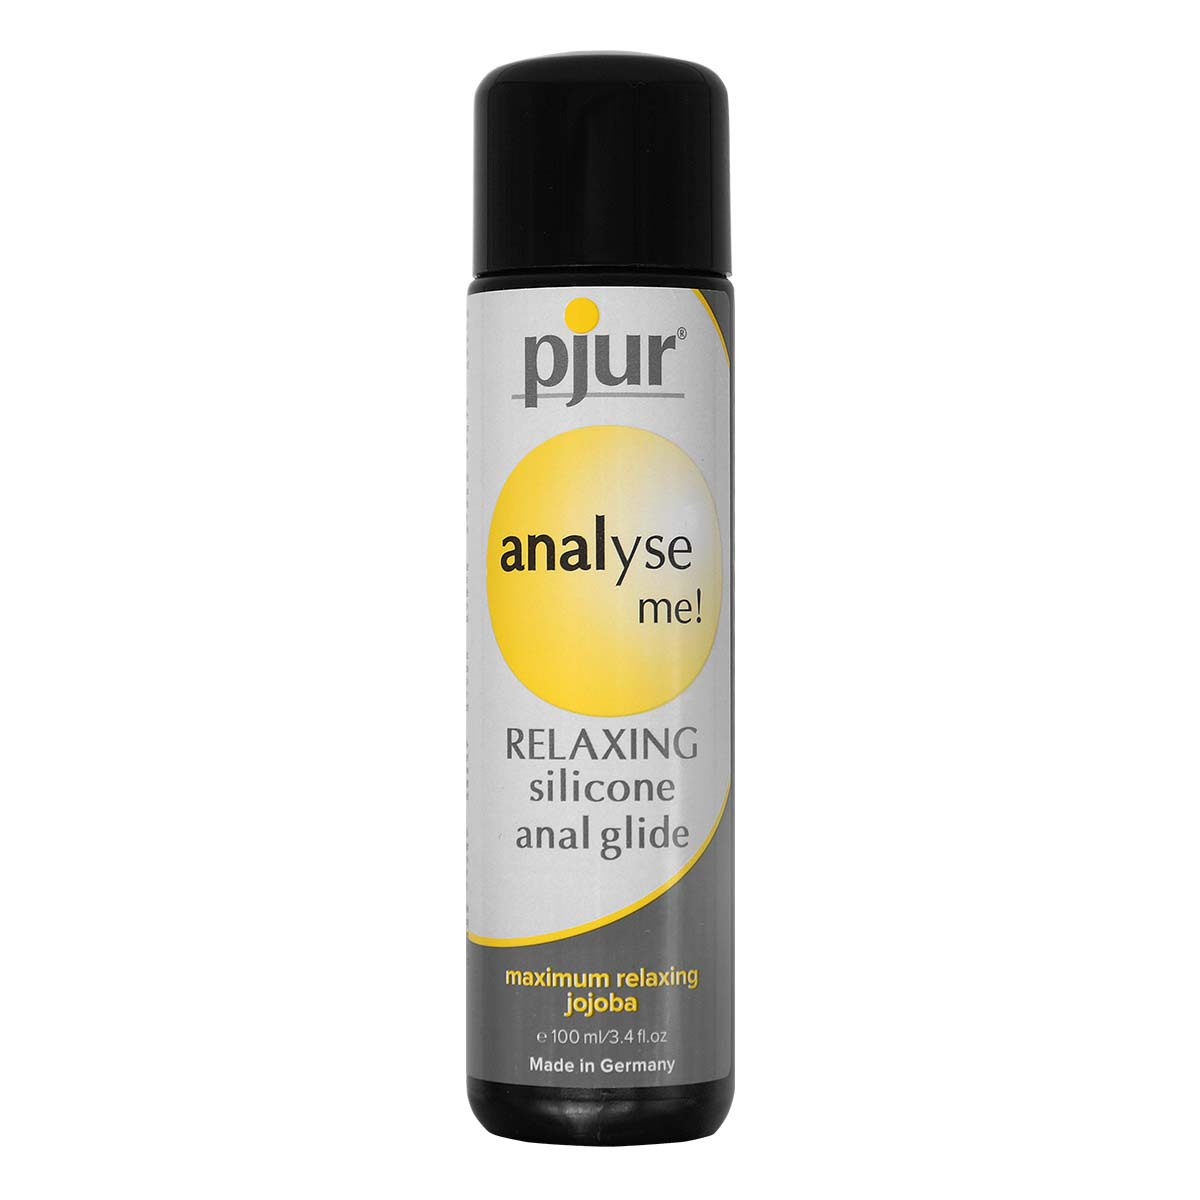 pjur analyse me! RELAXING Silicone Anal Glide 100ml Silicone-based Lubricant